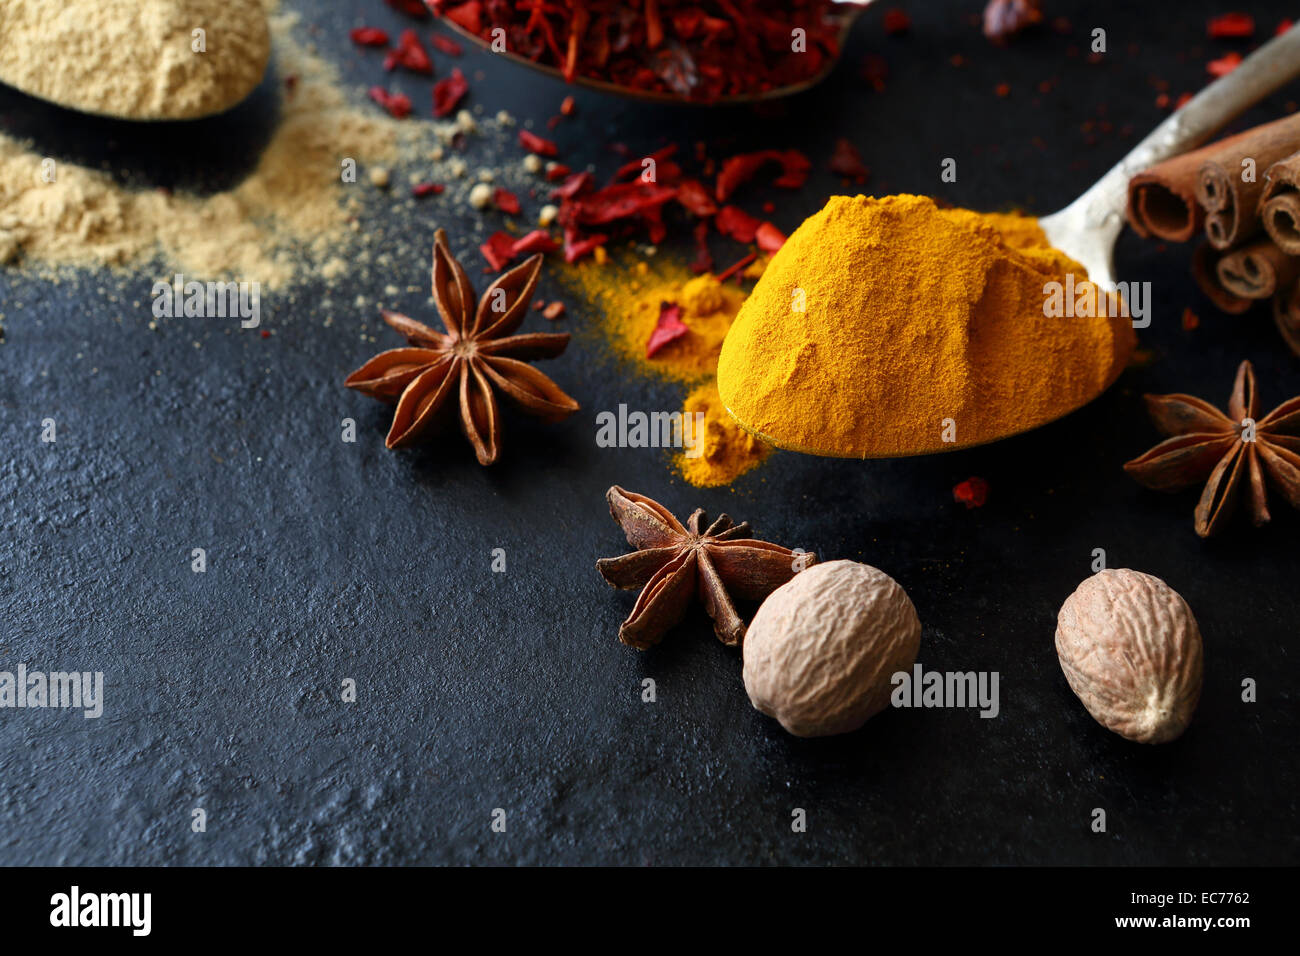 Turmeric and ginger in the spoons, food - Stock Image